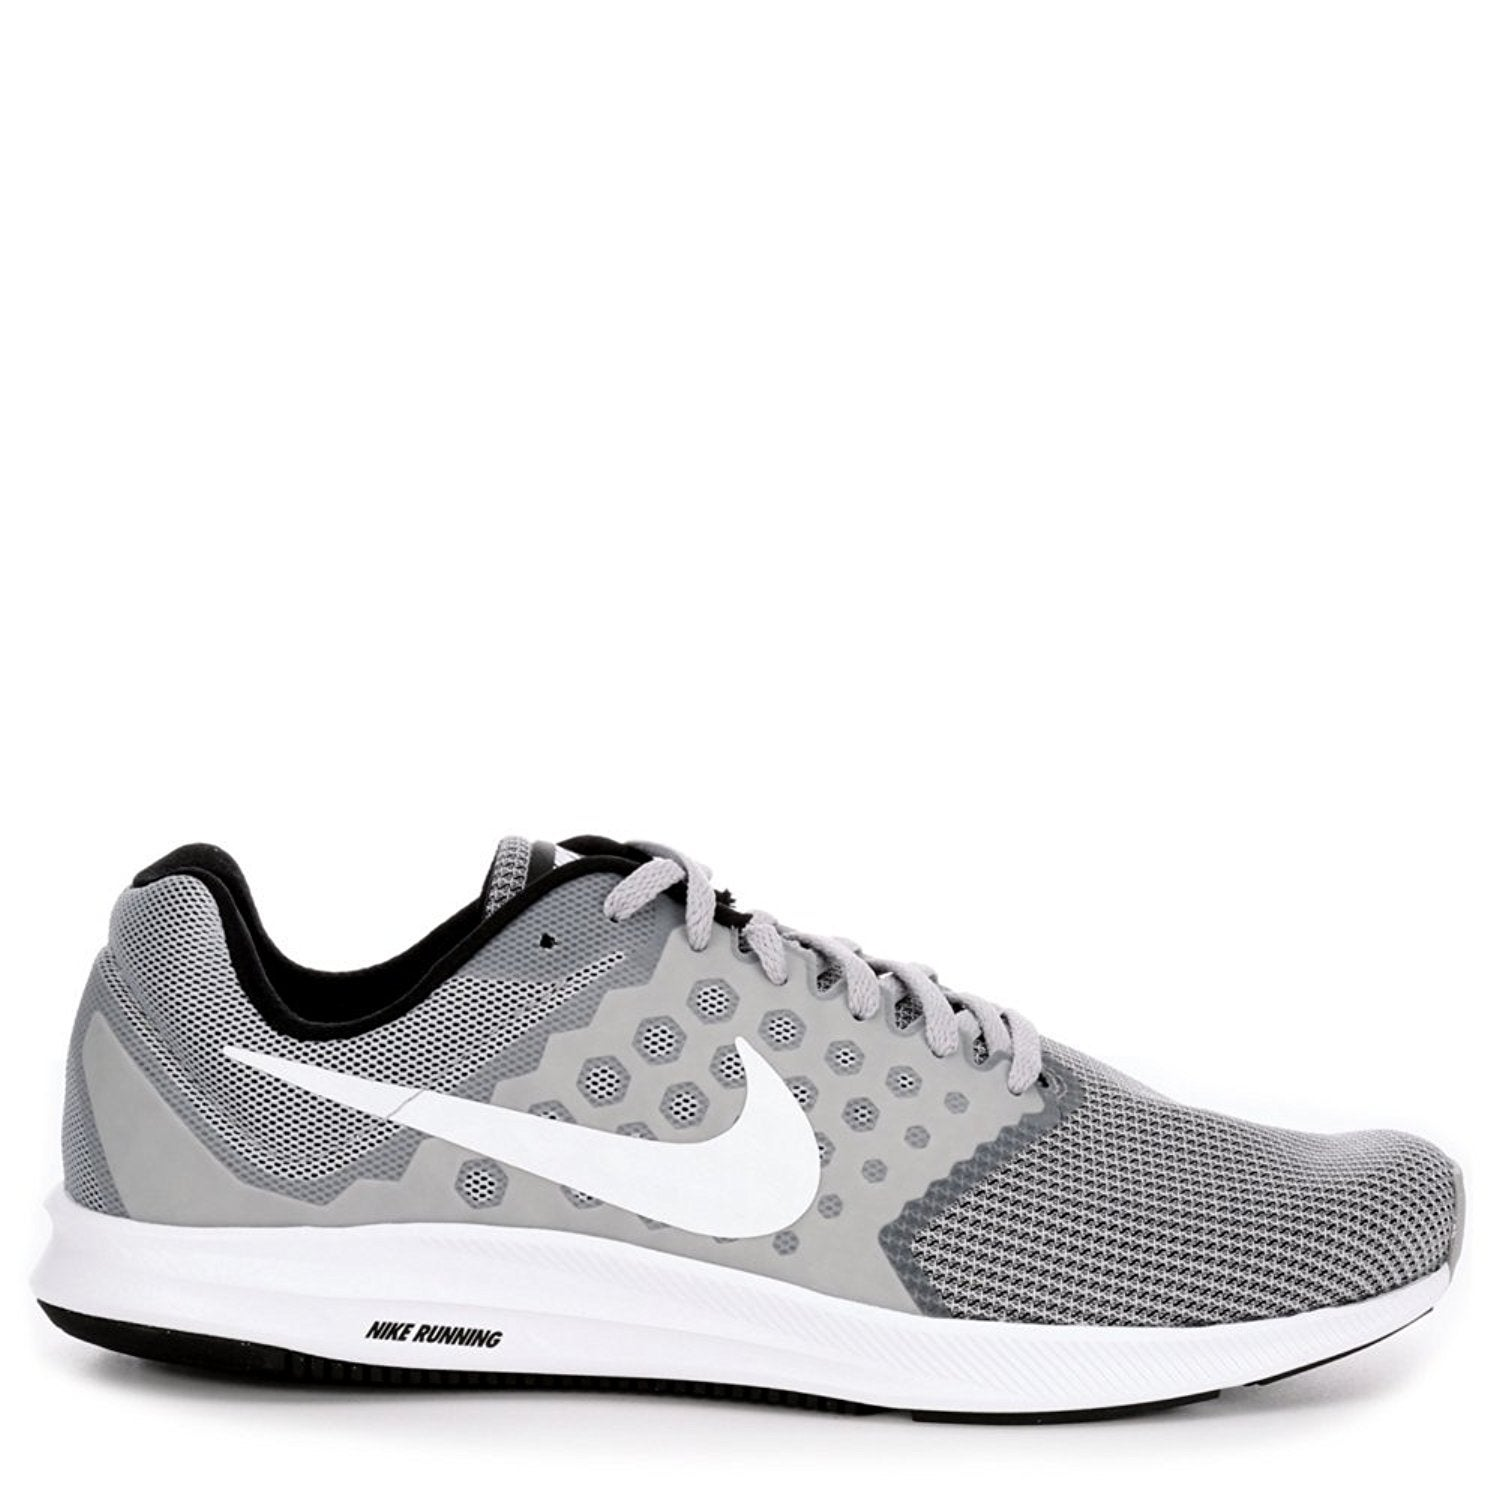 fe77751da1bd6 Shop Nike Downshifter 7 Wolf Grey White Men s Black Running Shoes - wolf  grey white black - Free Shipping Today - Overstock - 18275029